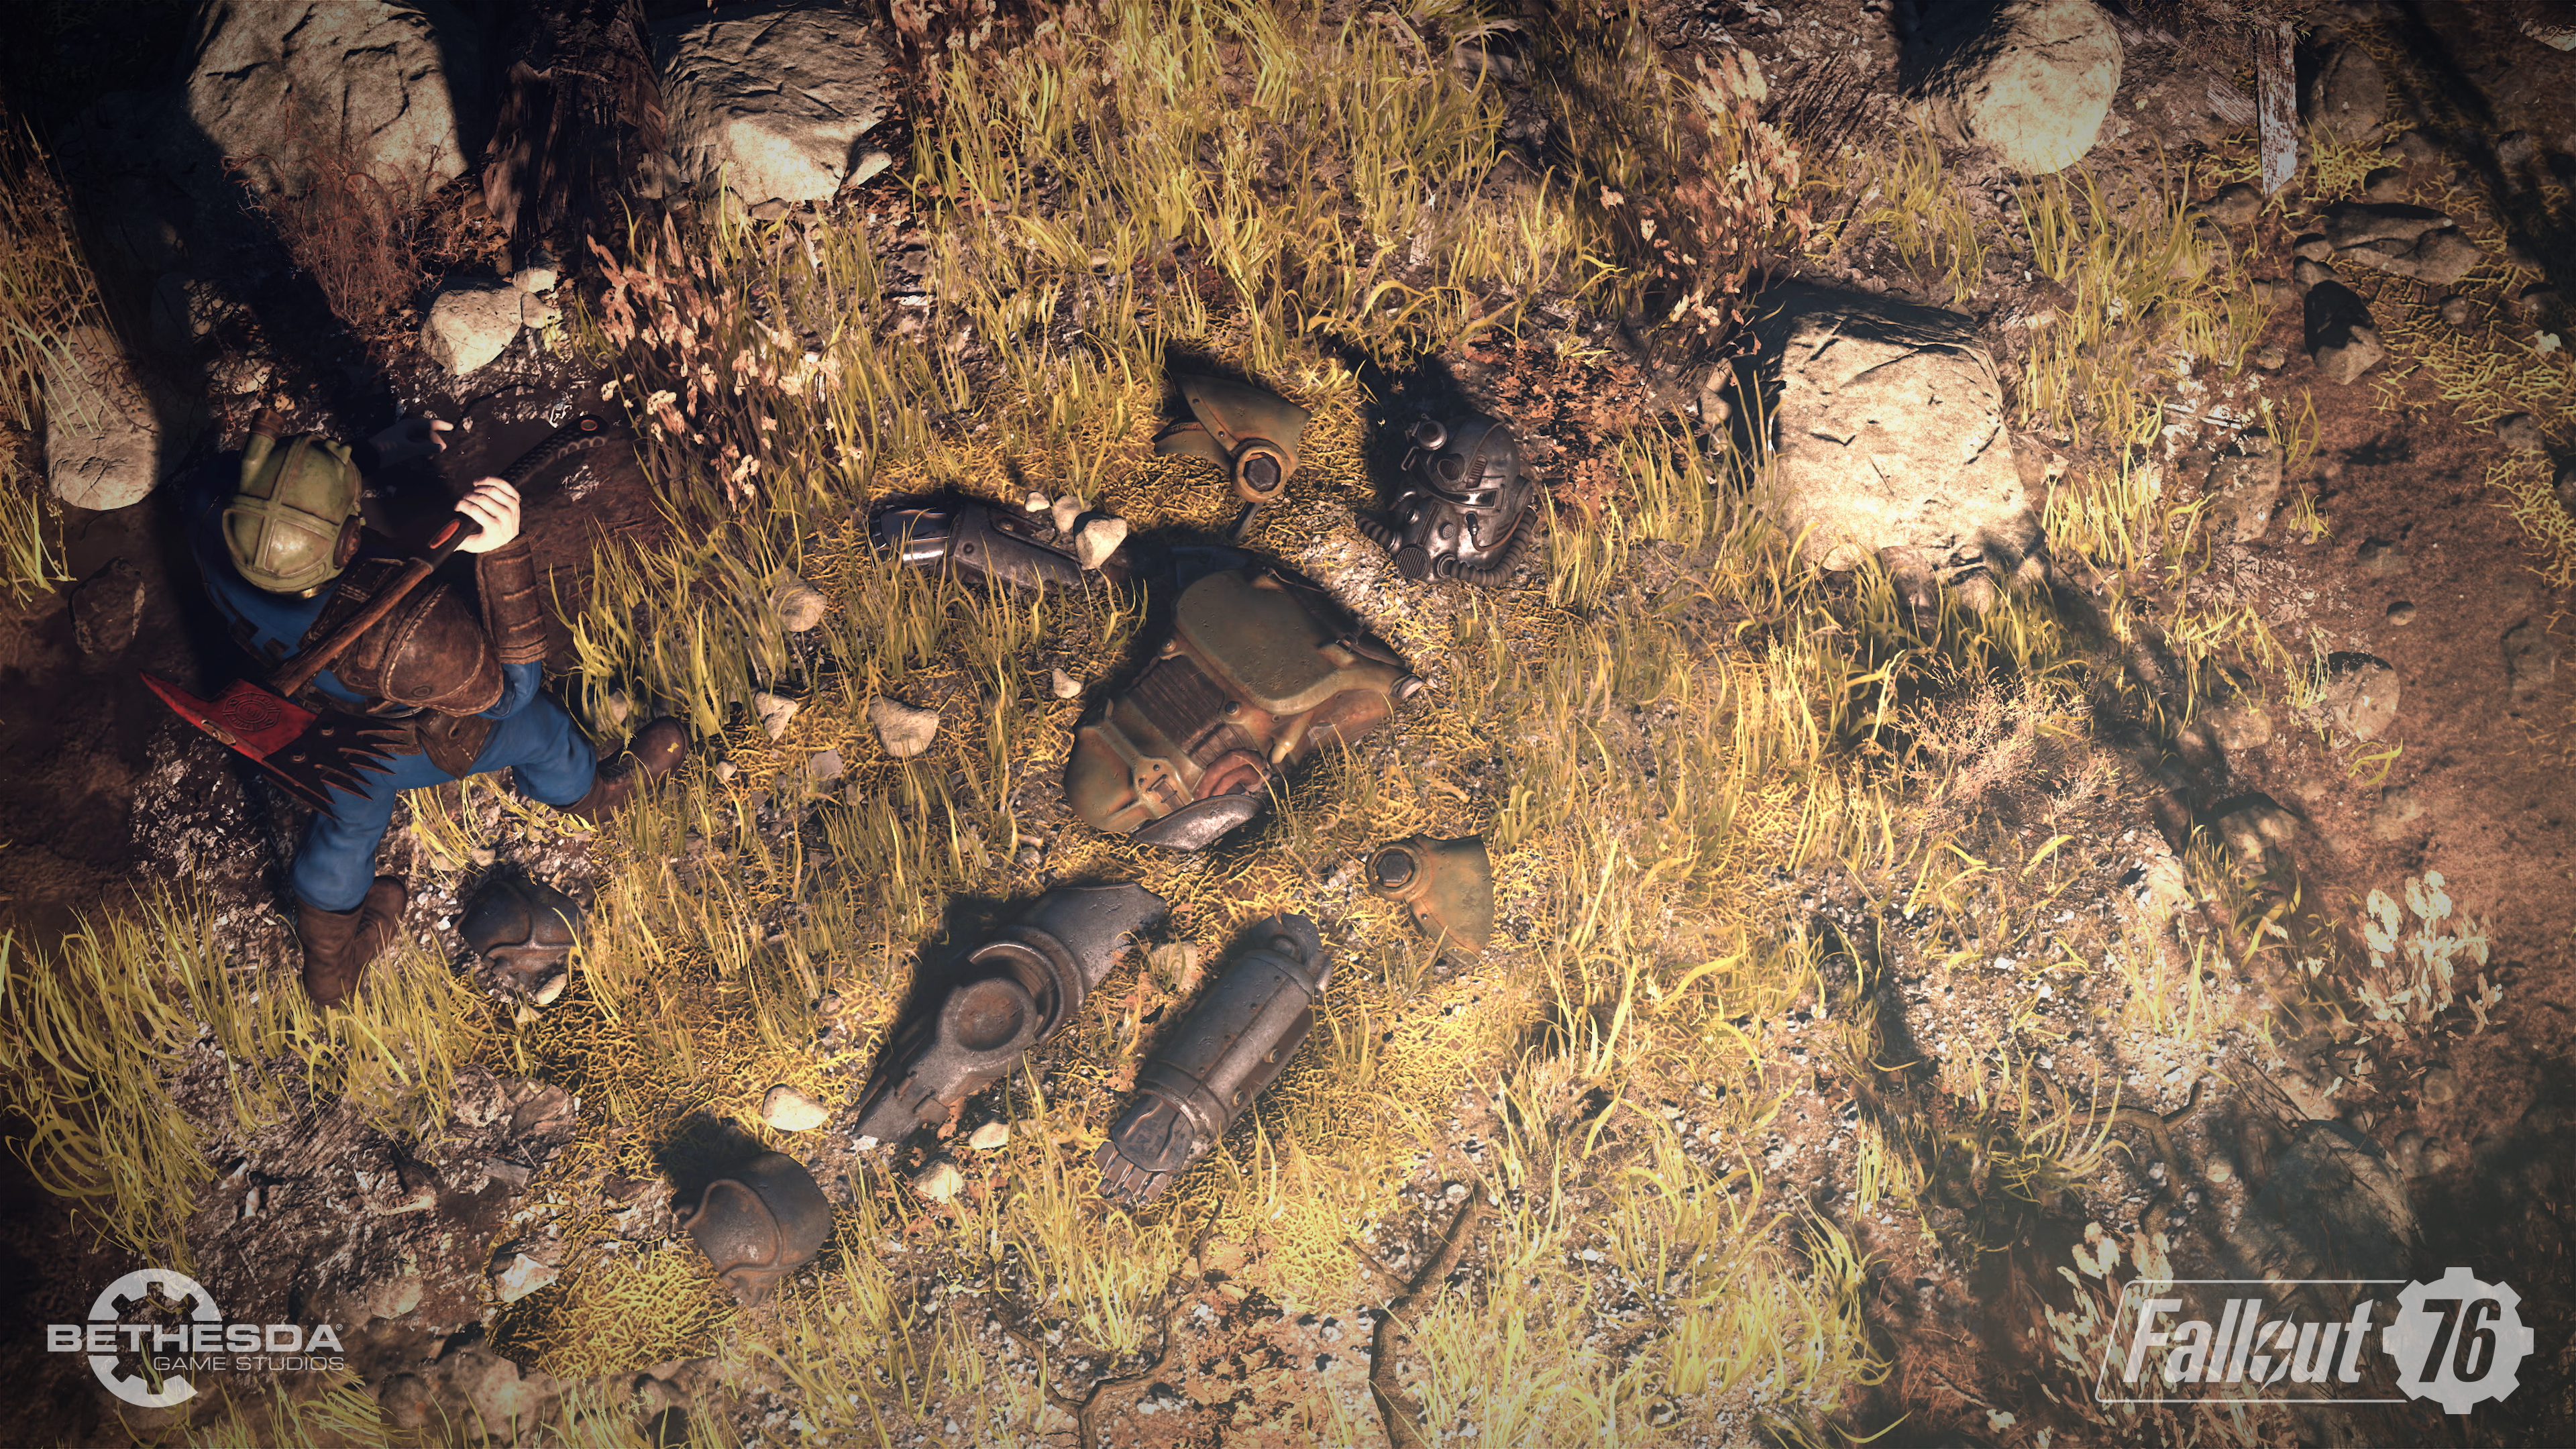 The weakest part of Fallout 76's world is the baggage of